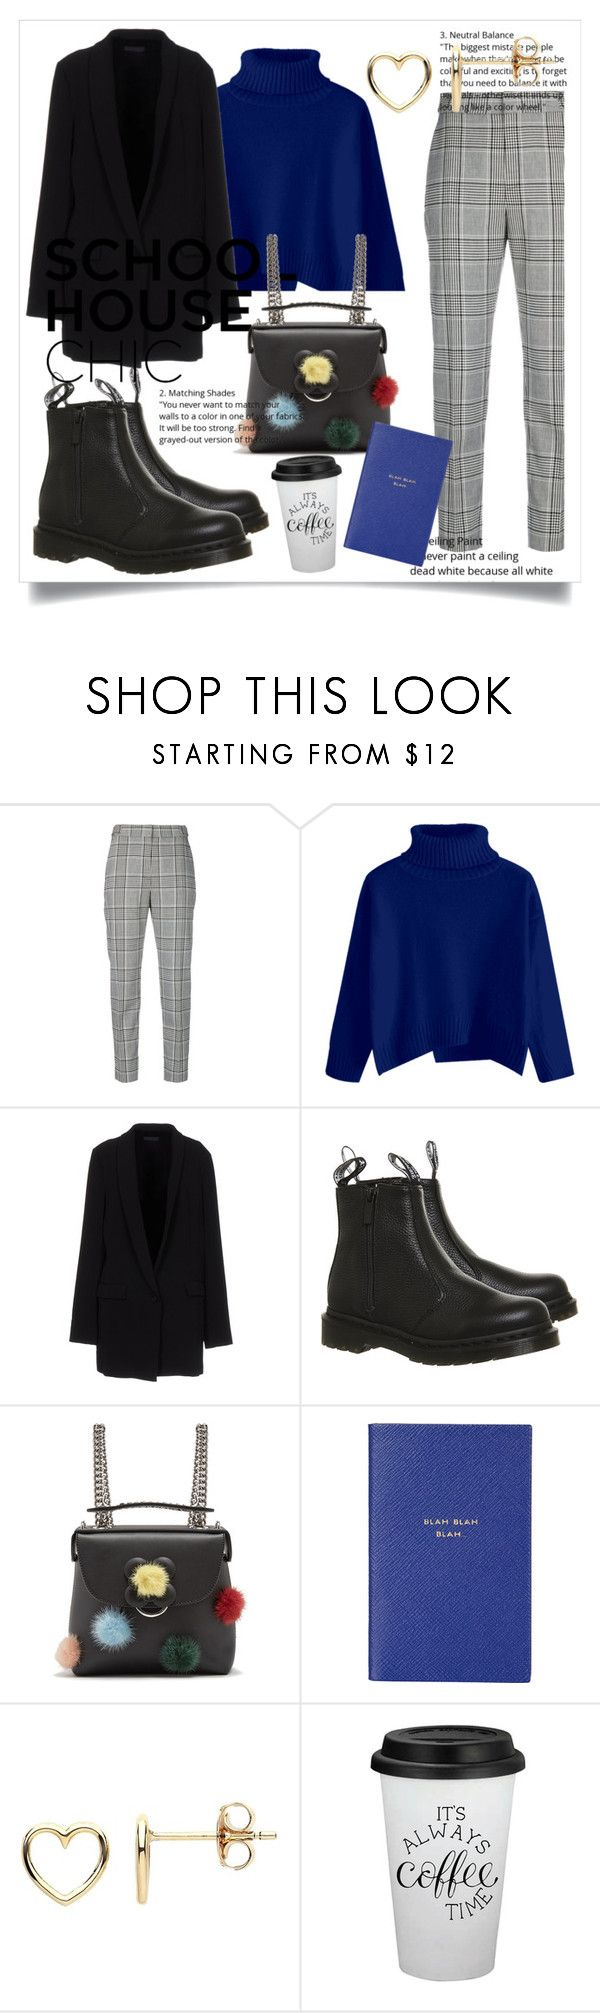 """""""school house chic"""" by sophia-pantel ❤ liked on Polyvore featuring Alexander Wang, Twin-Set, Dr. Martens, Fendi, Smythson and Estella Bartlett"""